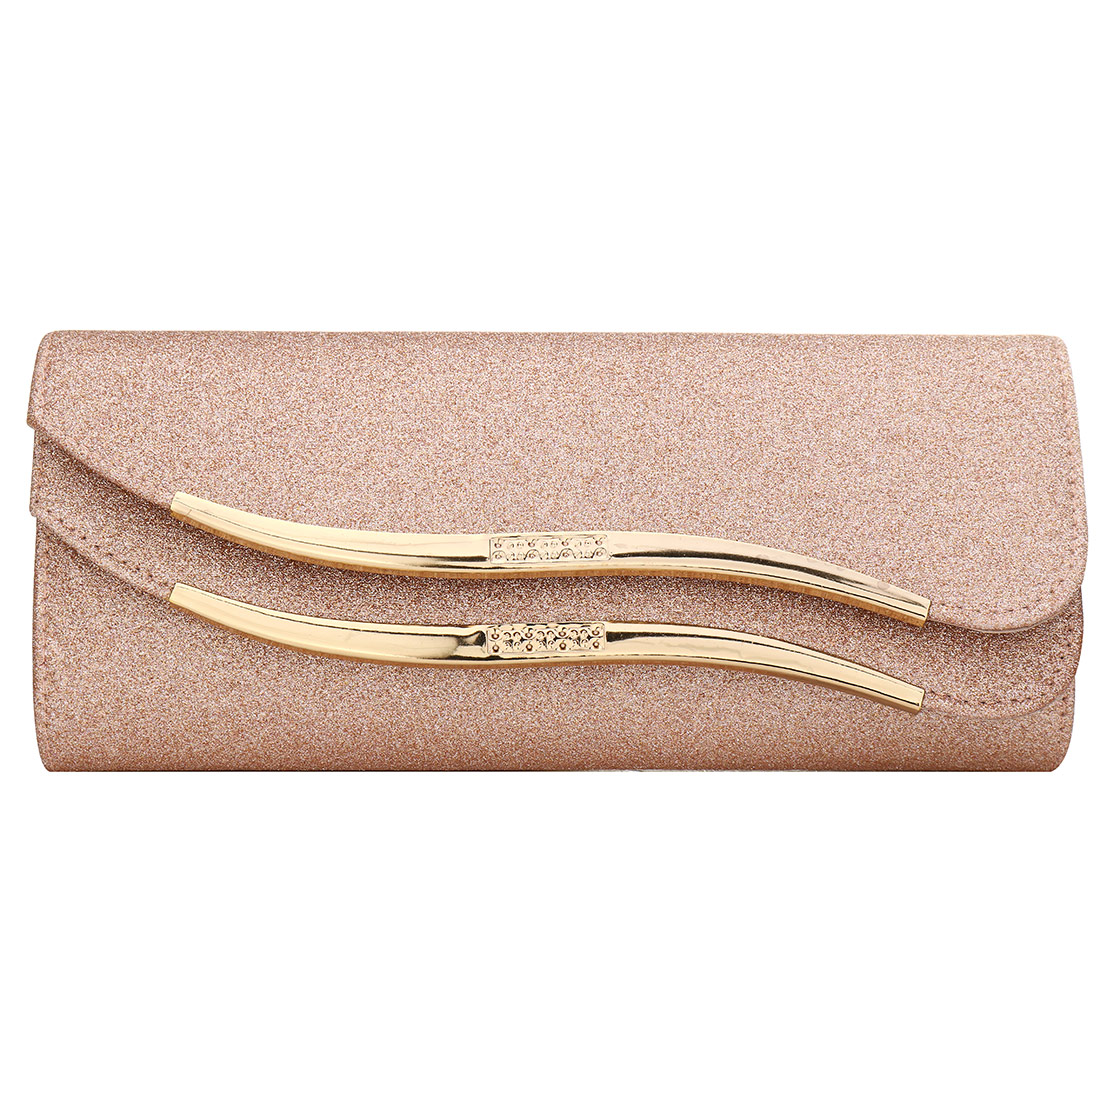 New Fashion Sequined Envelope Clutch Women'S Evening Bags Bling Day Clutches Pink Wedding Purse Female Handbag 2019 Banquet Bag